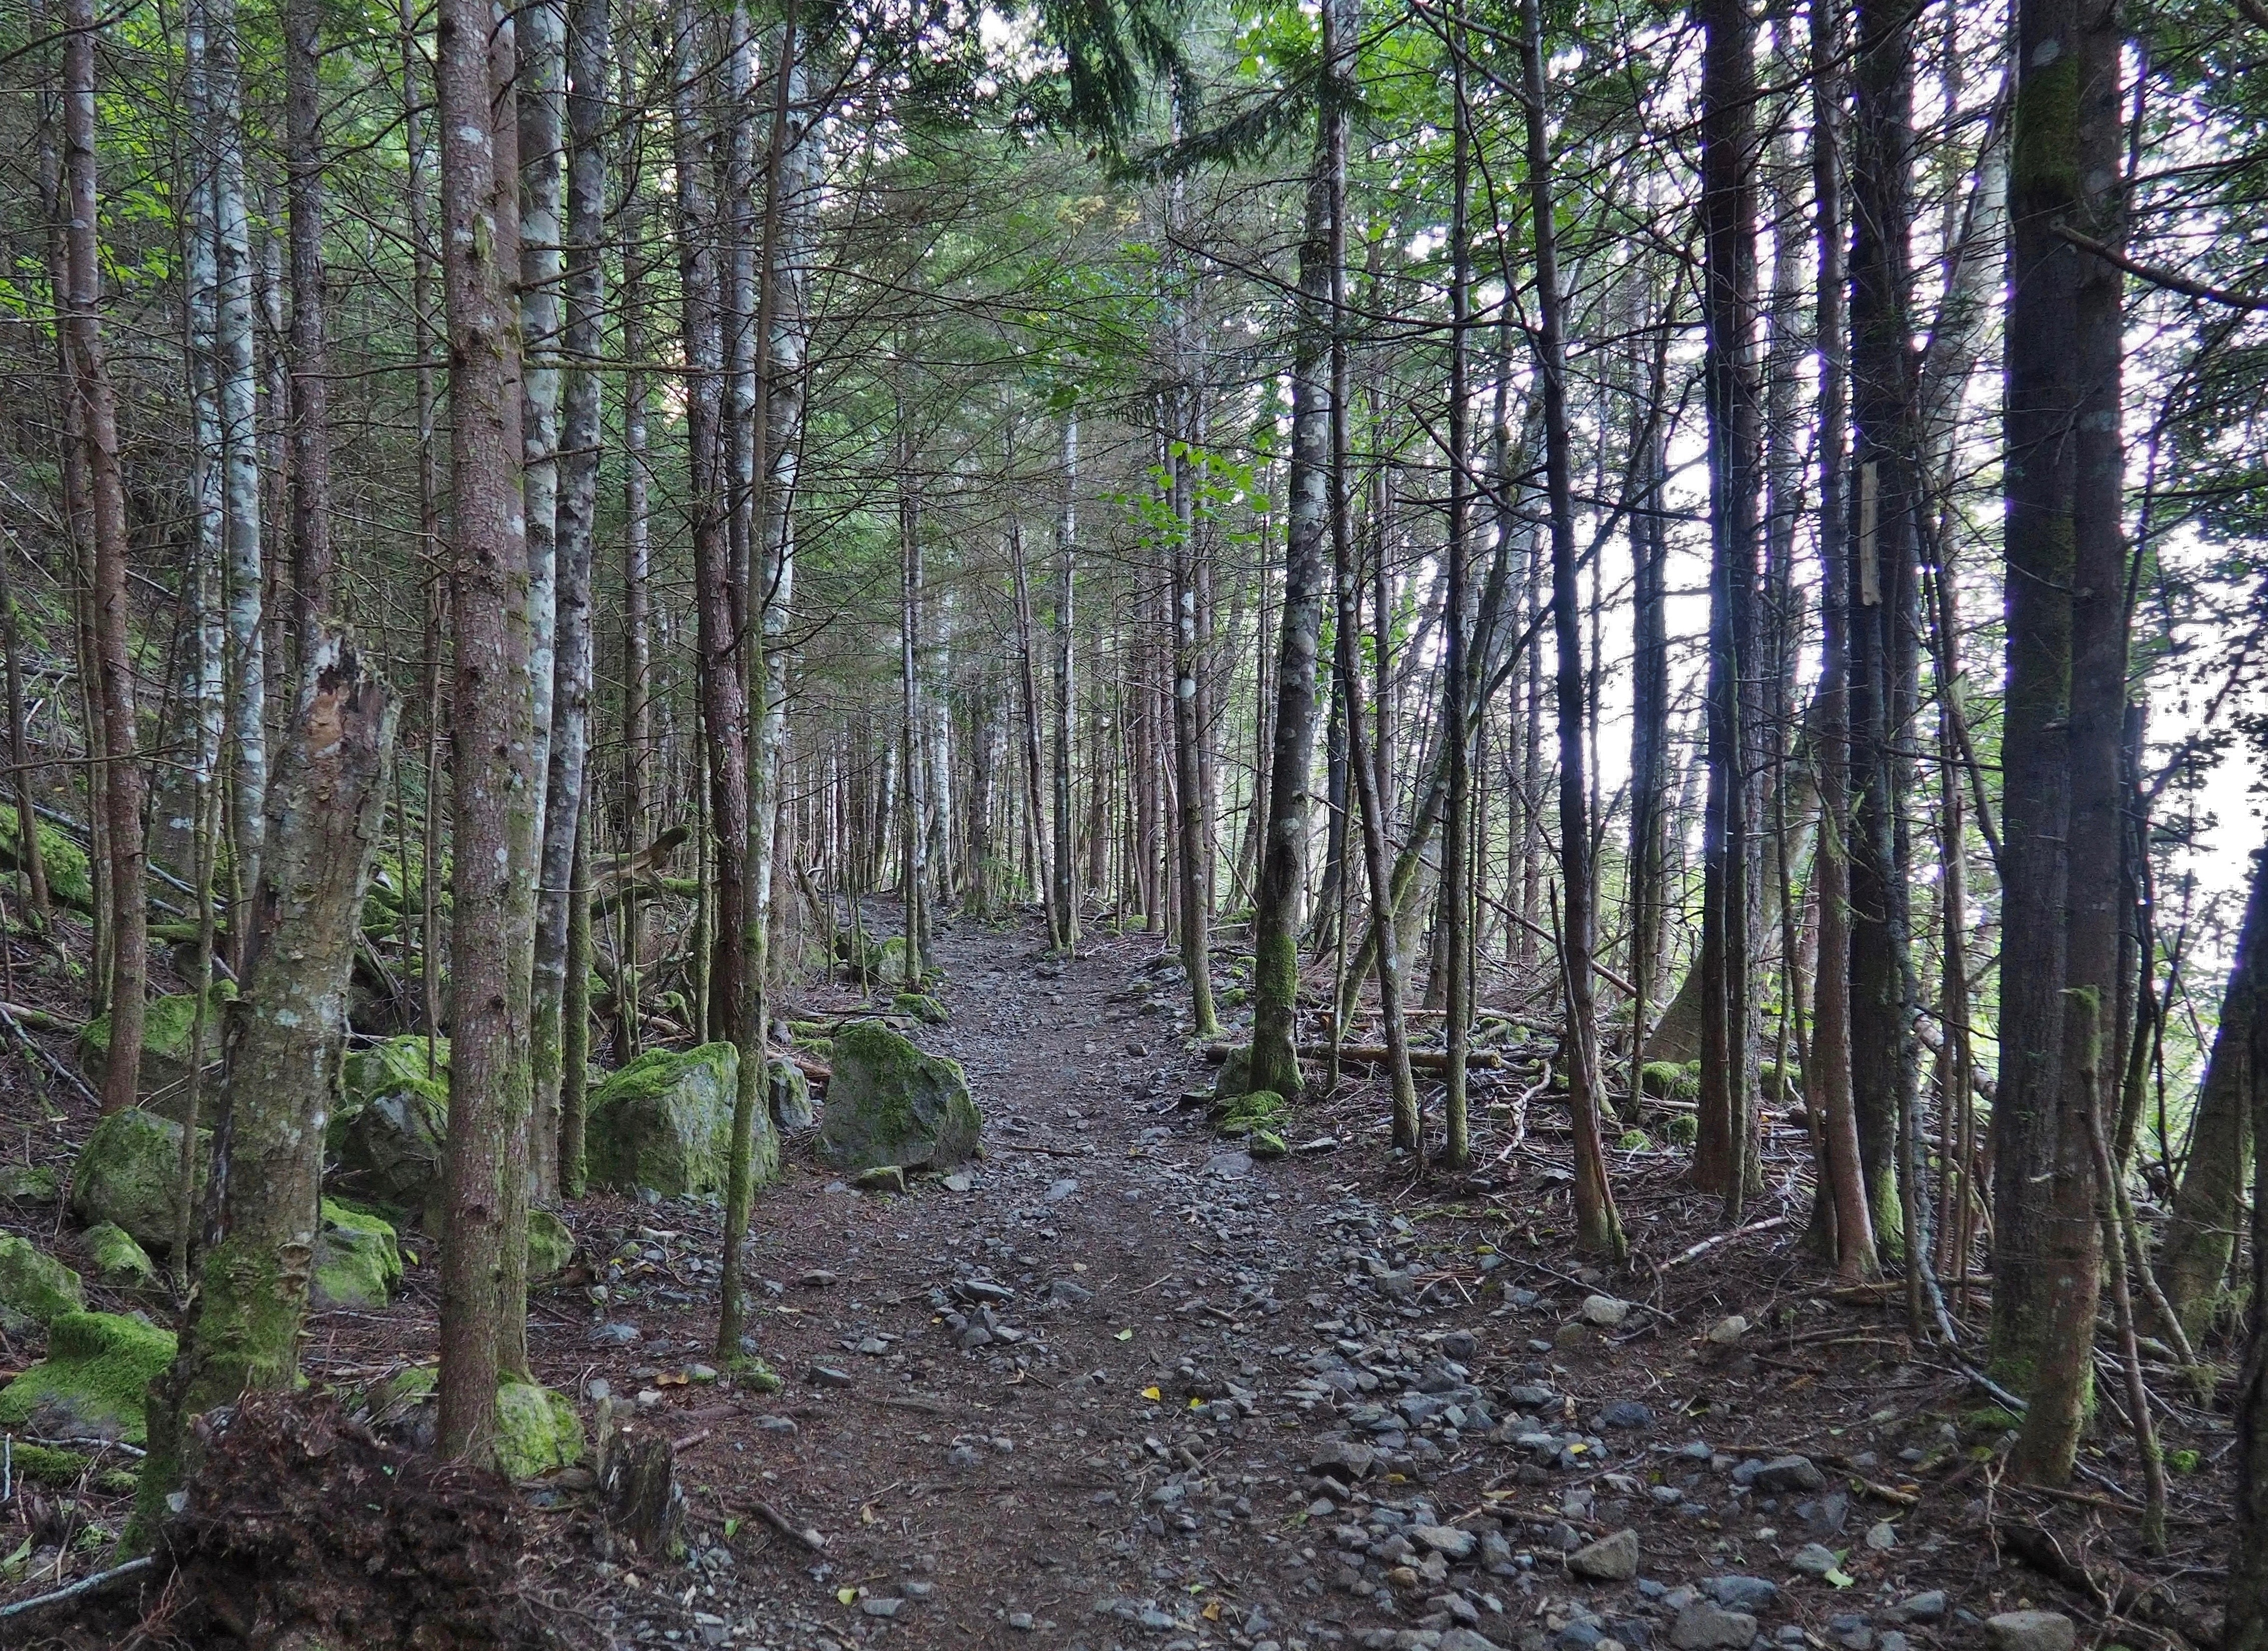 As the trail climbs beyond the leafy lowland, spindly young conifer forest fences much of its stony ascent. Mount Washington Trail, July 26, 2016.